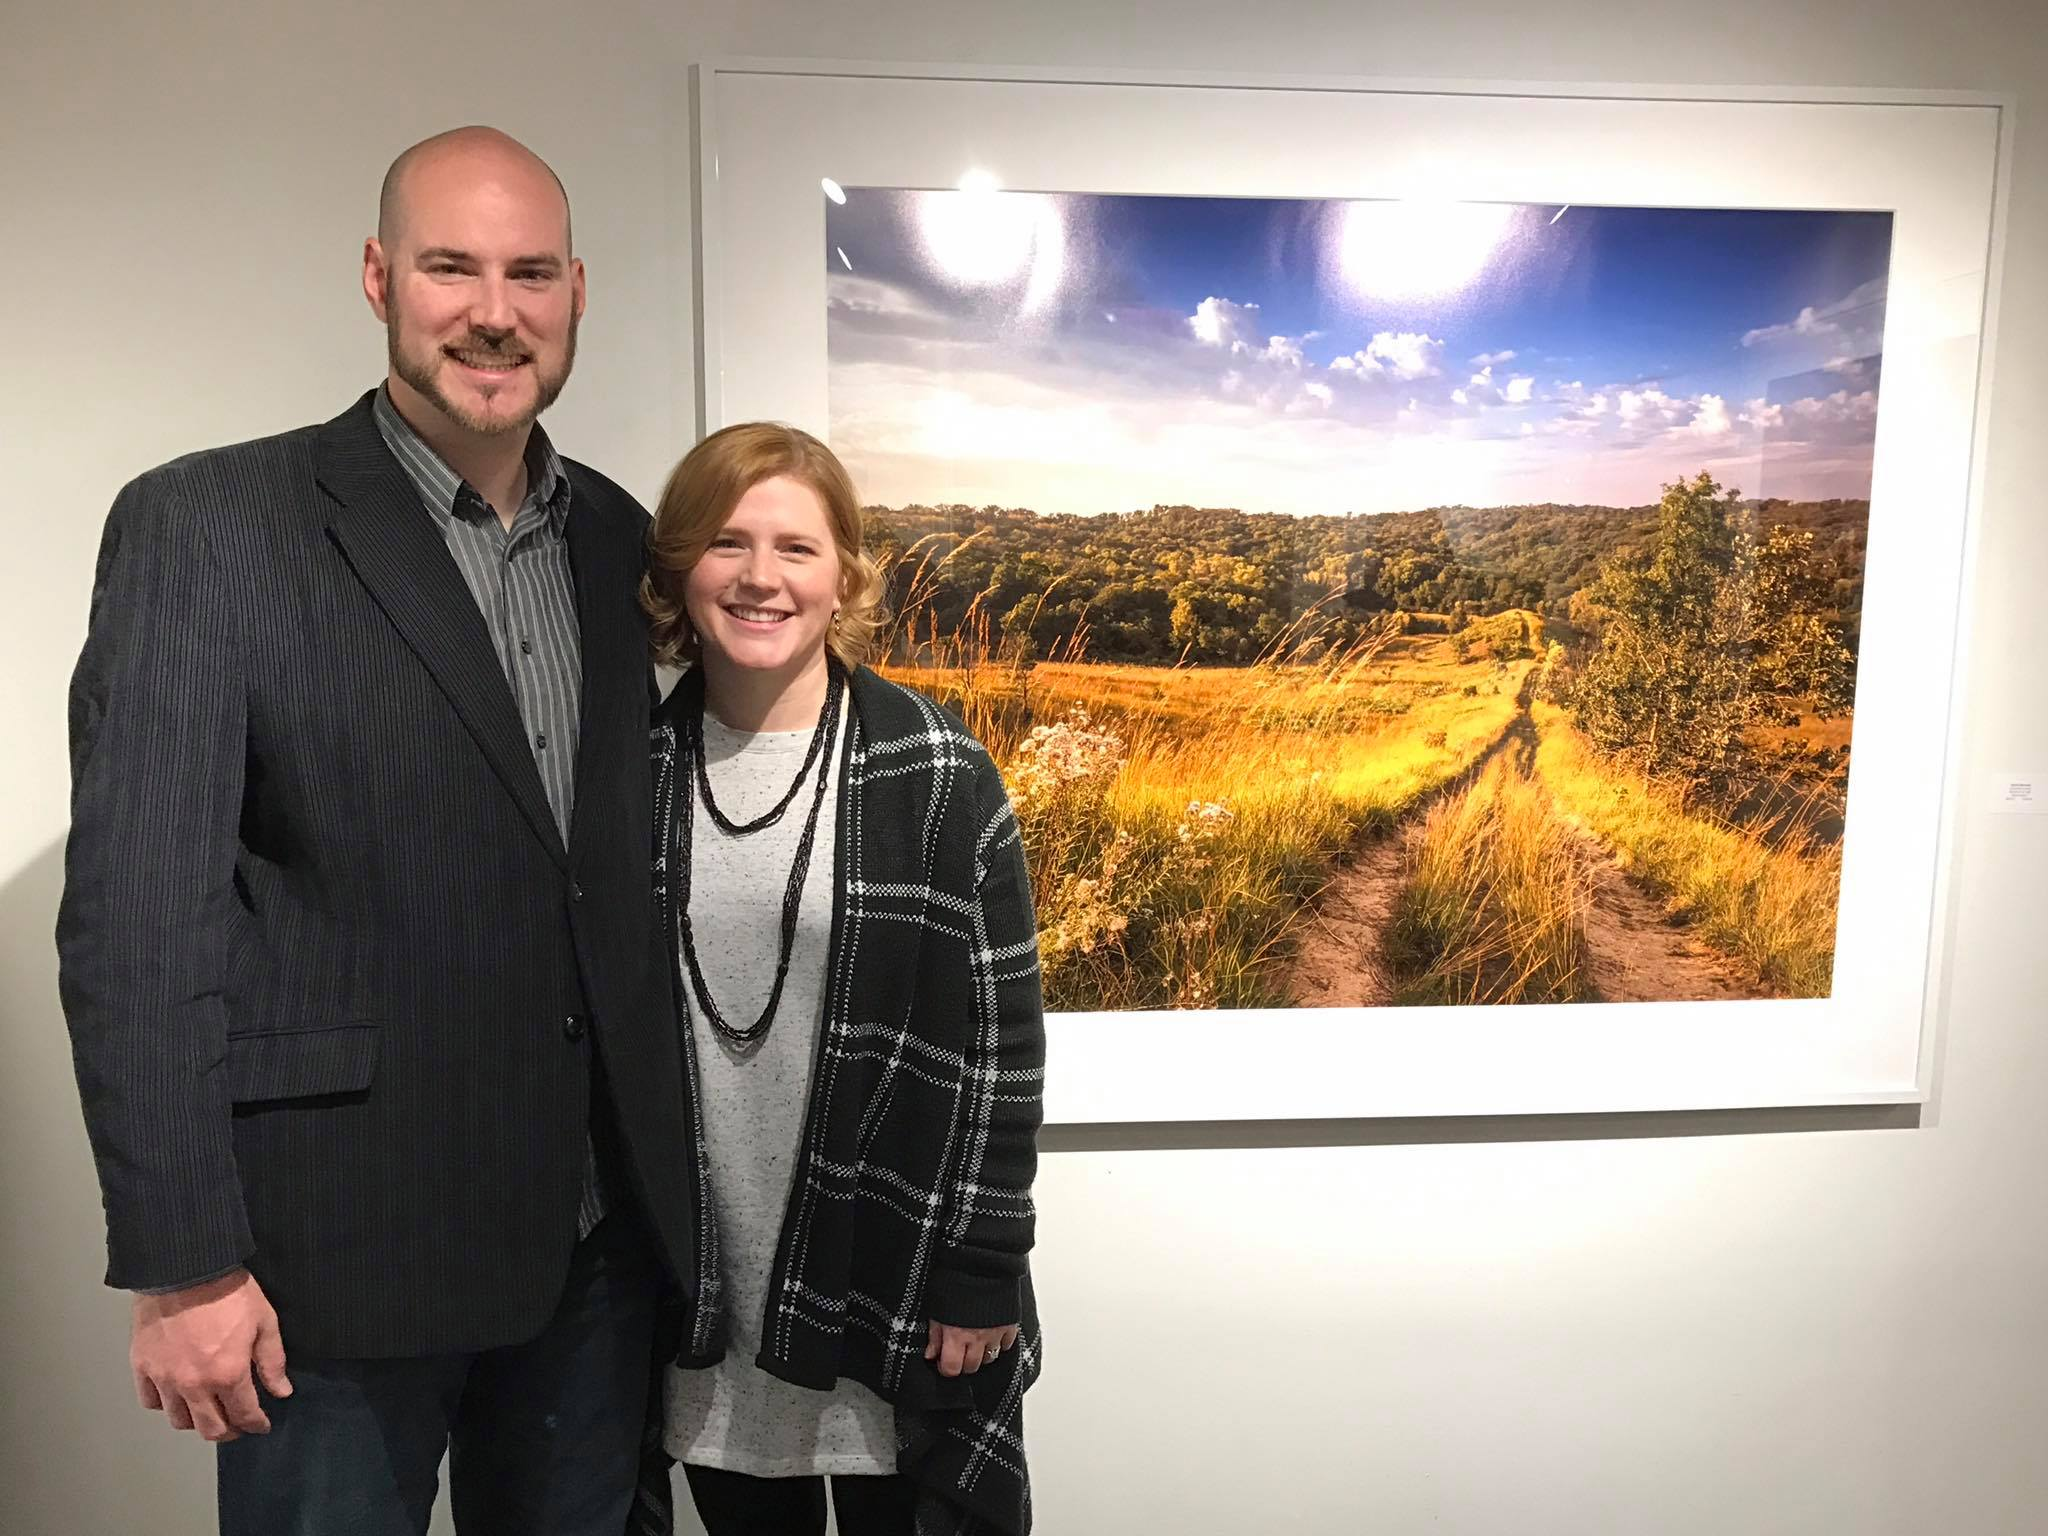 GALLERY: Olson-Larsen Galleries New Works Exhibit